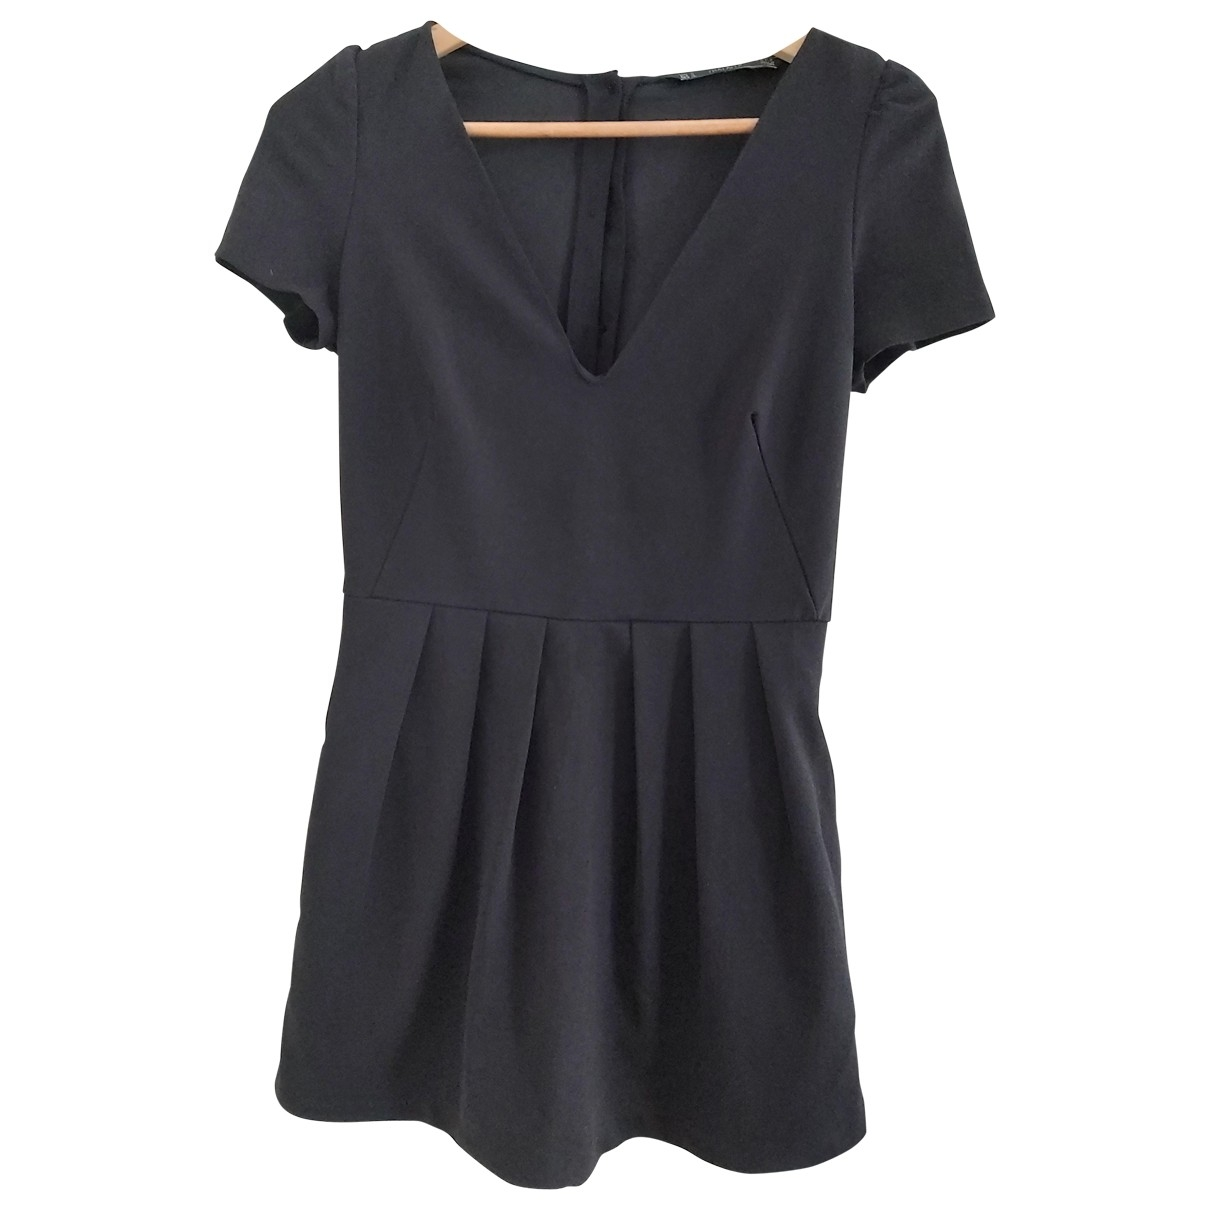 Zara \N Black dress for Women S International